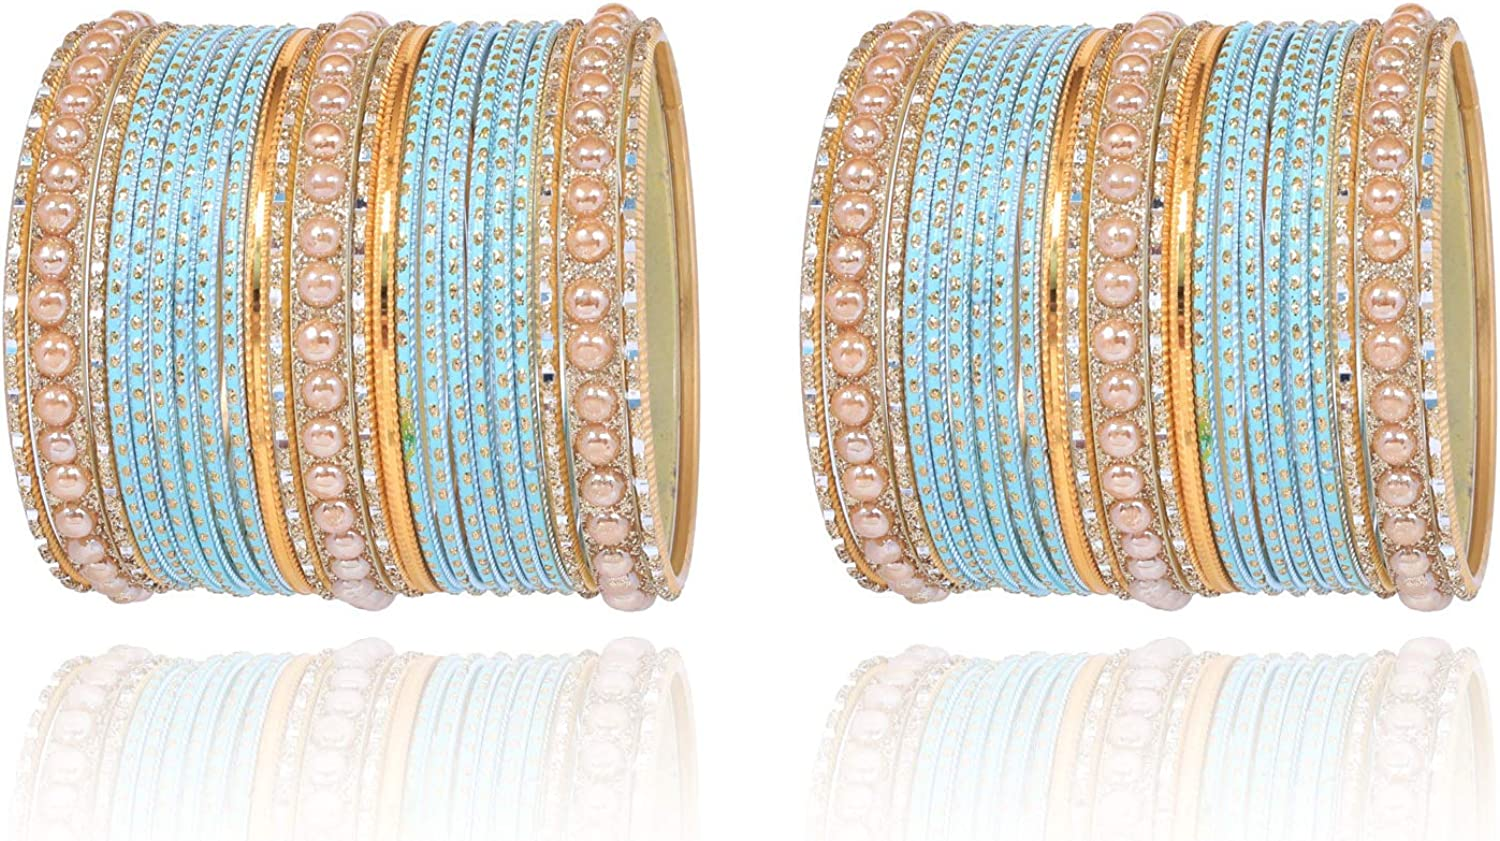 Sukh Collection Jewellery New Colorful 44 Bangle Collection Indian Bollywood Alloy Metal Textured Designer Jewelry Special All Size Bangle Bracelets Set of 44 in Gold Tone for Women